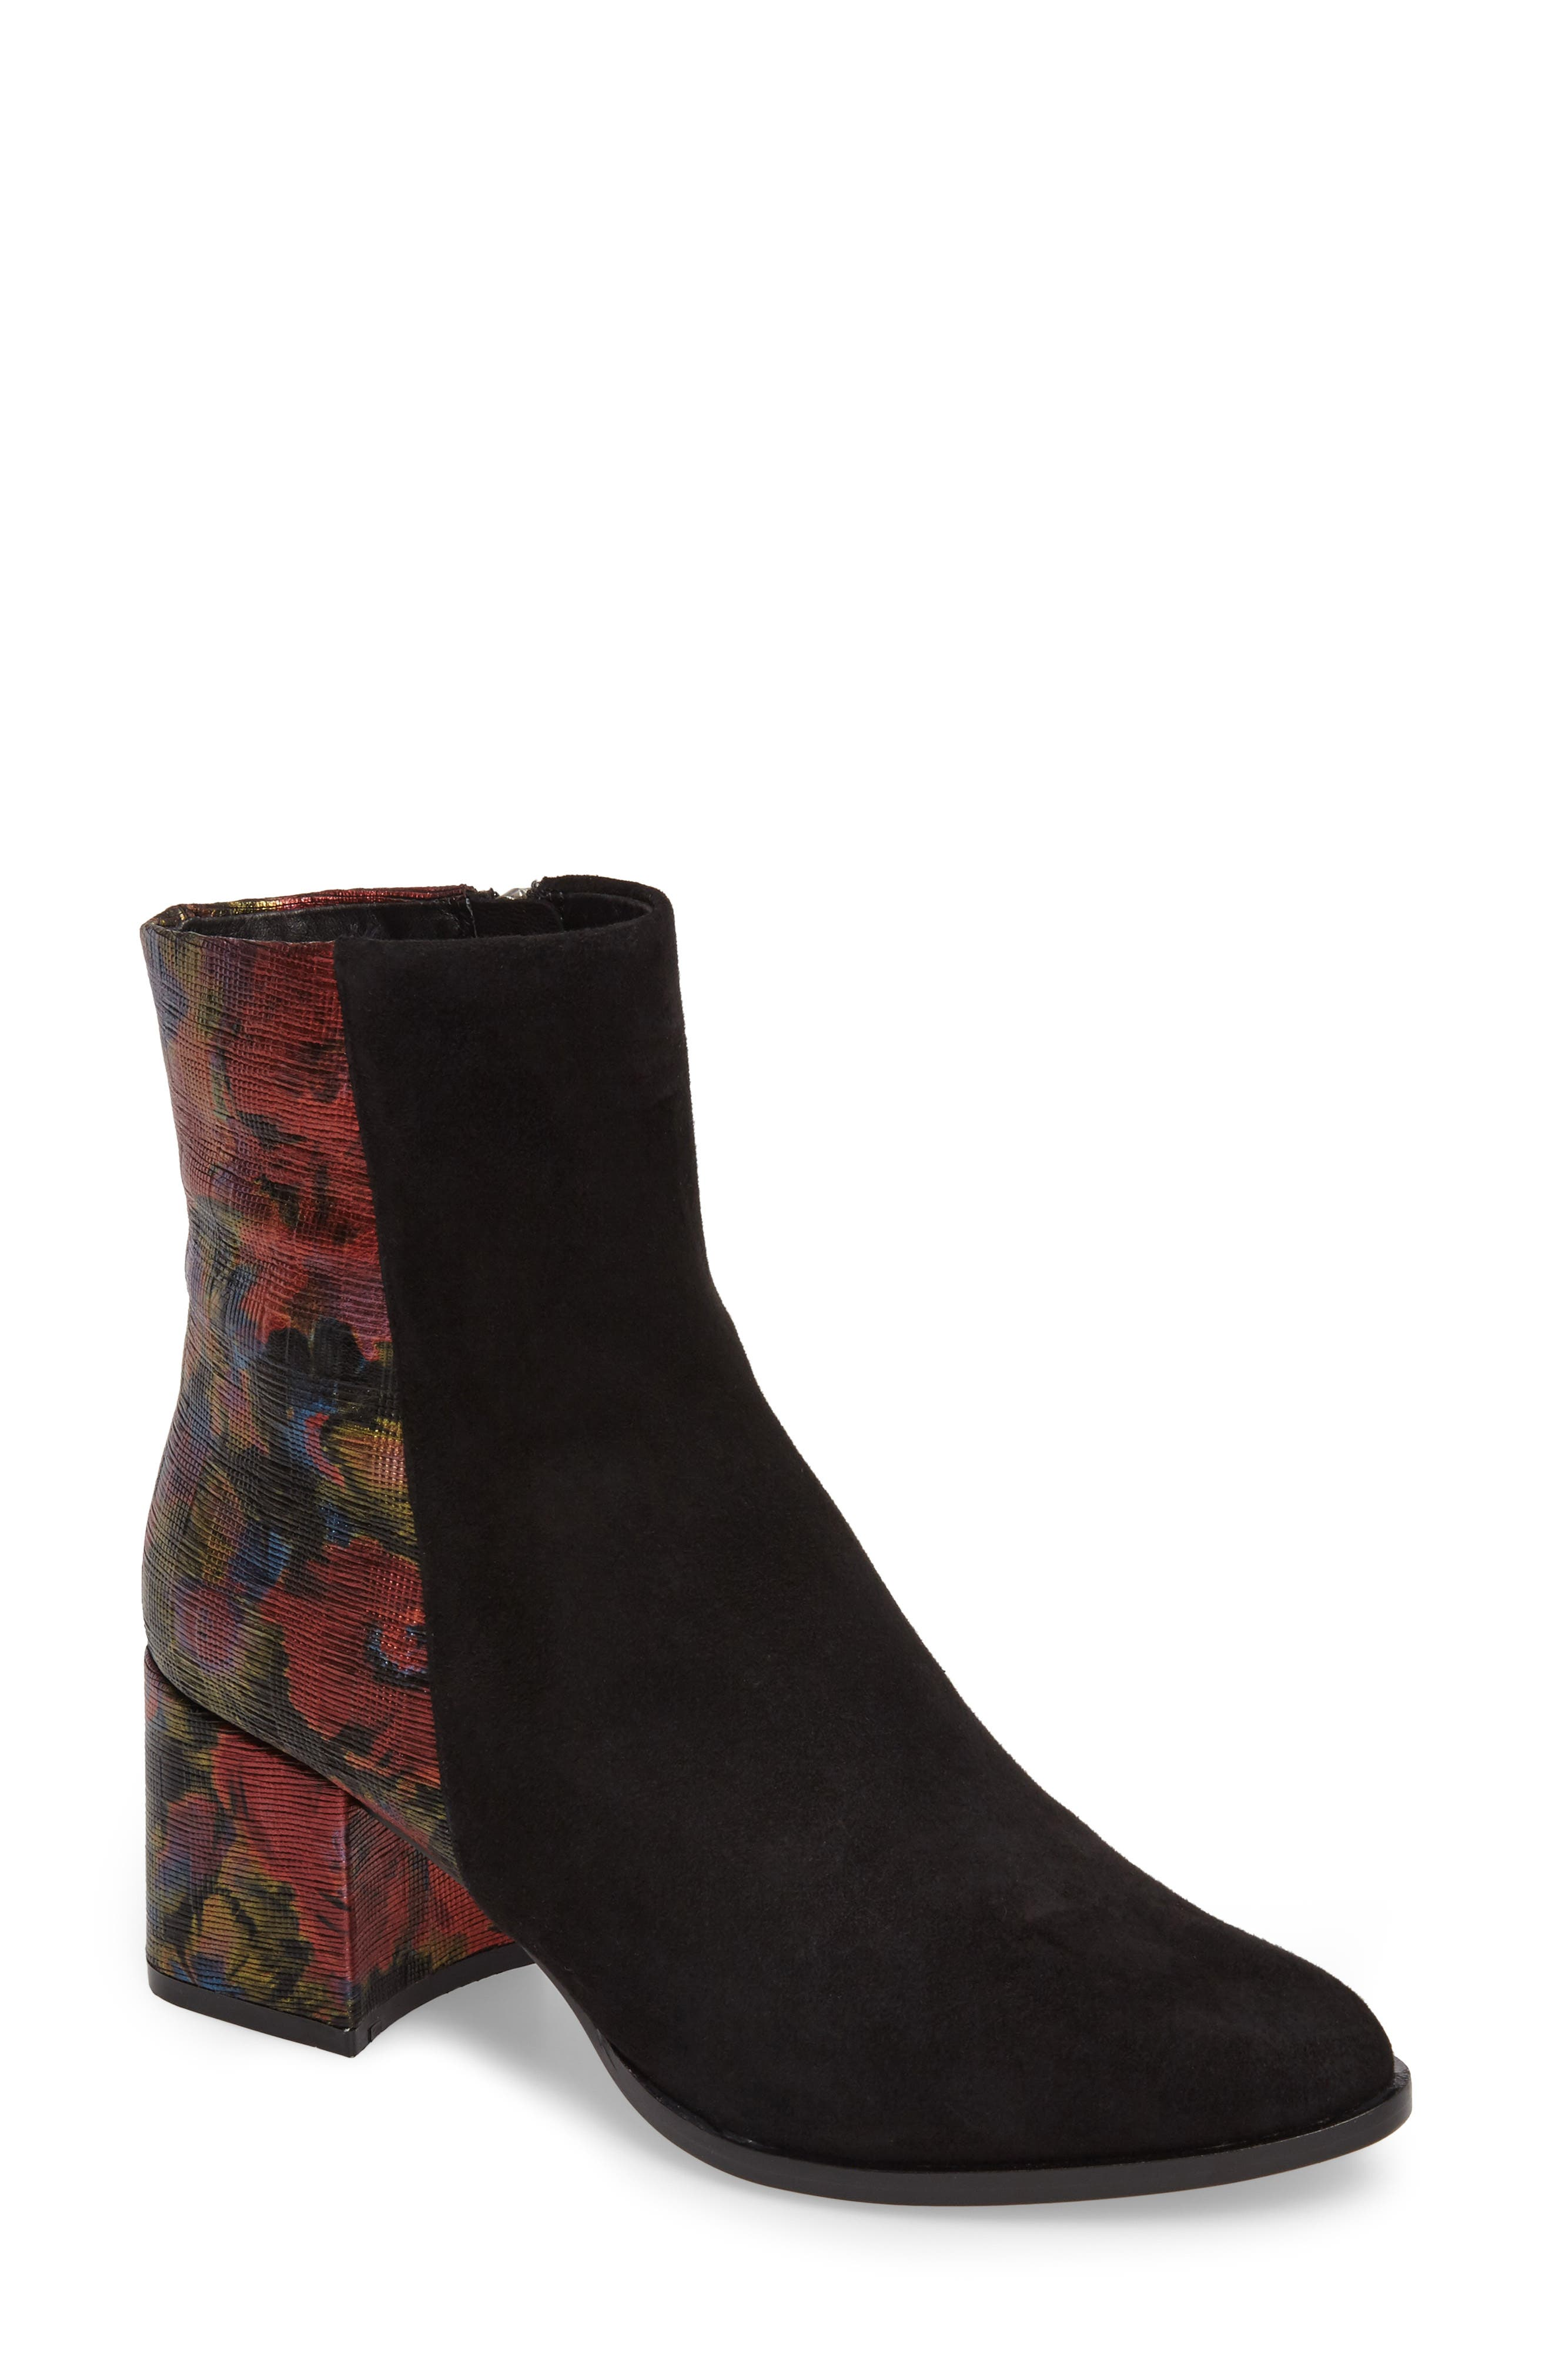 Brady Embellished Boot,                             Main thumbnail 1, color,                             Black/ Red Suede